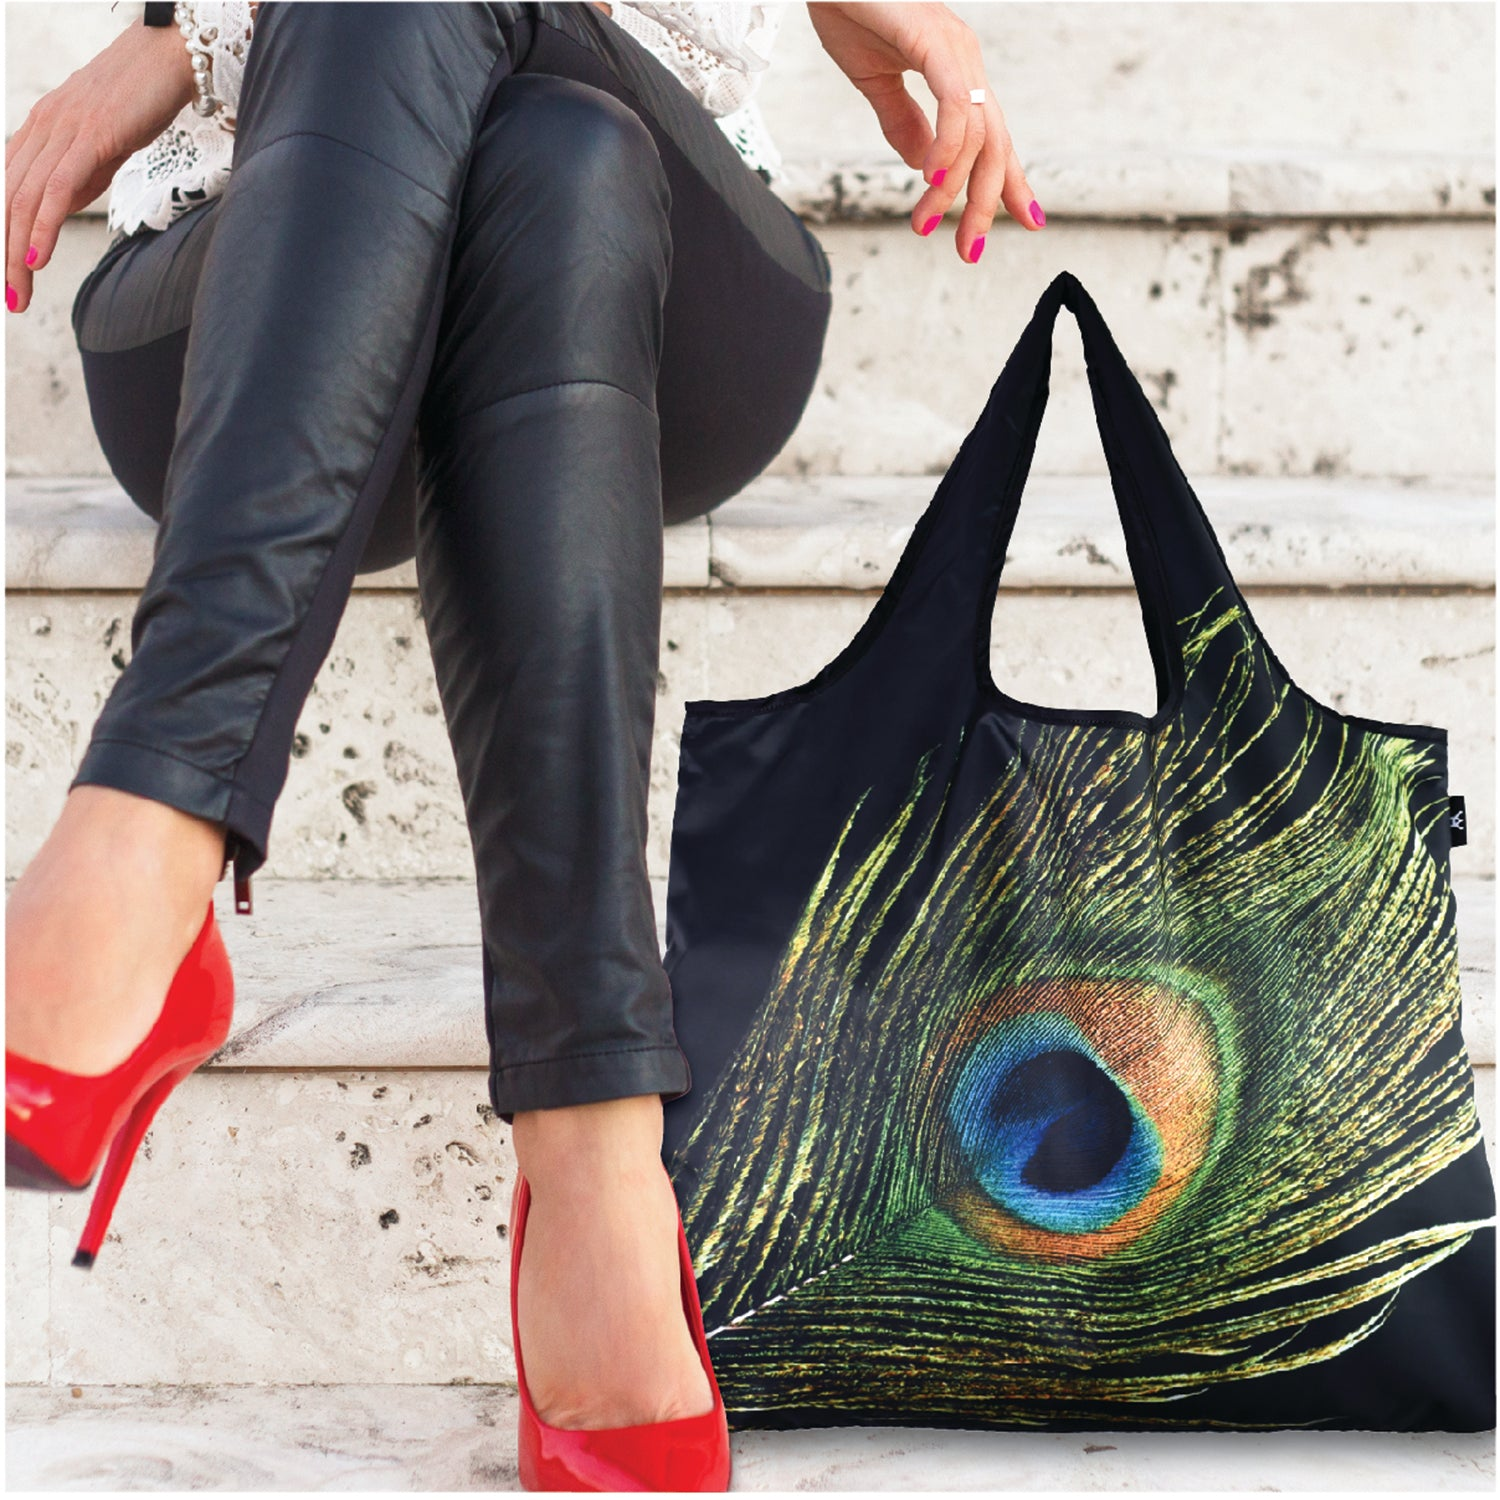 Peacock Reusable YaYbag